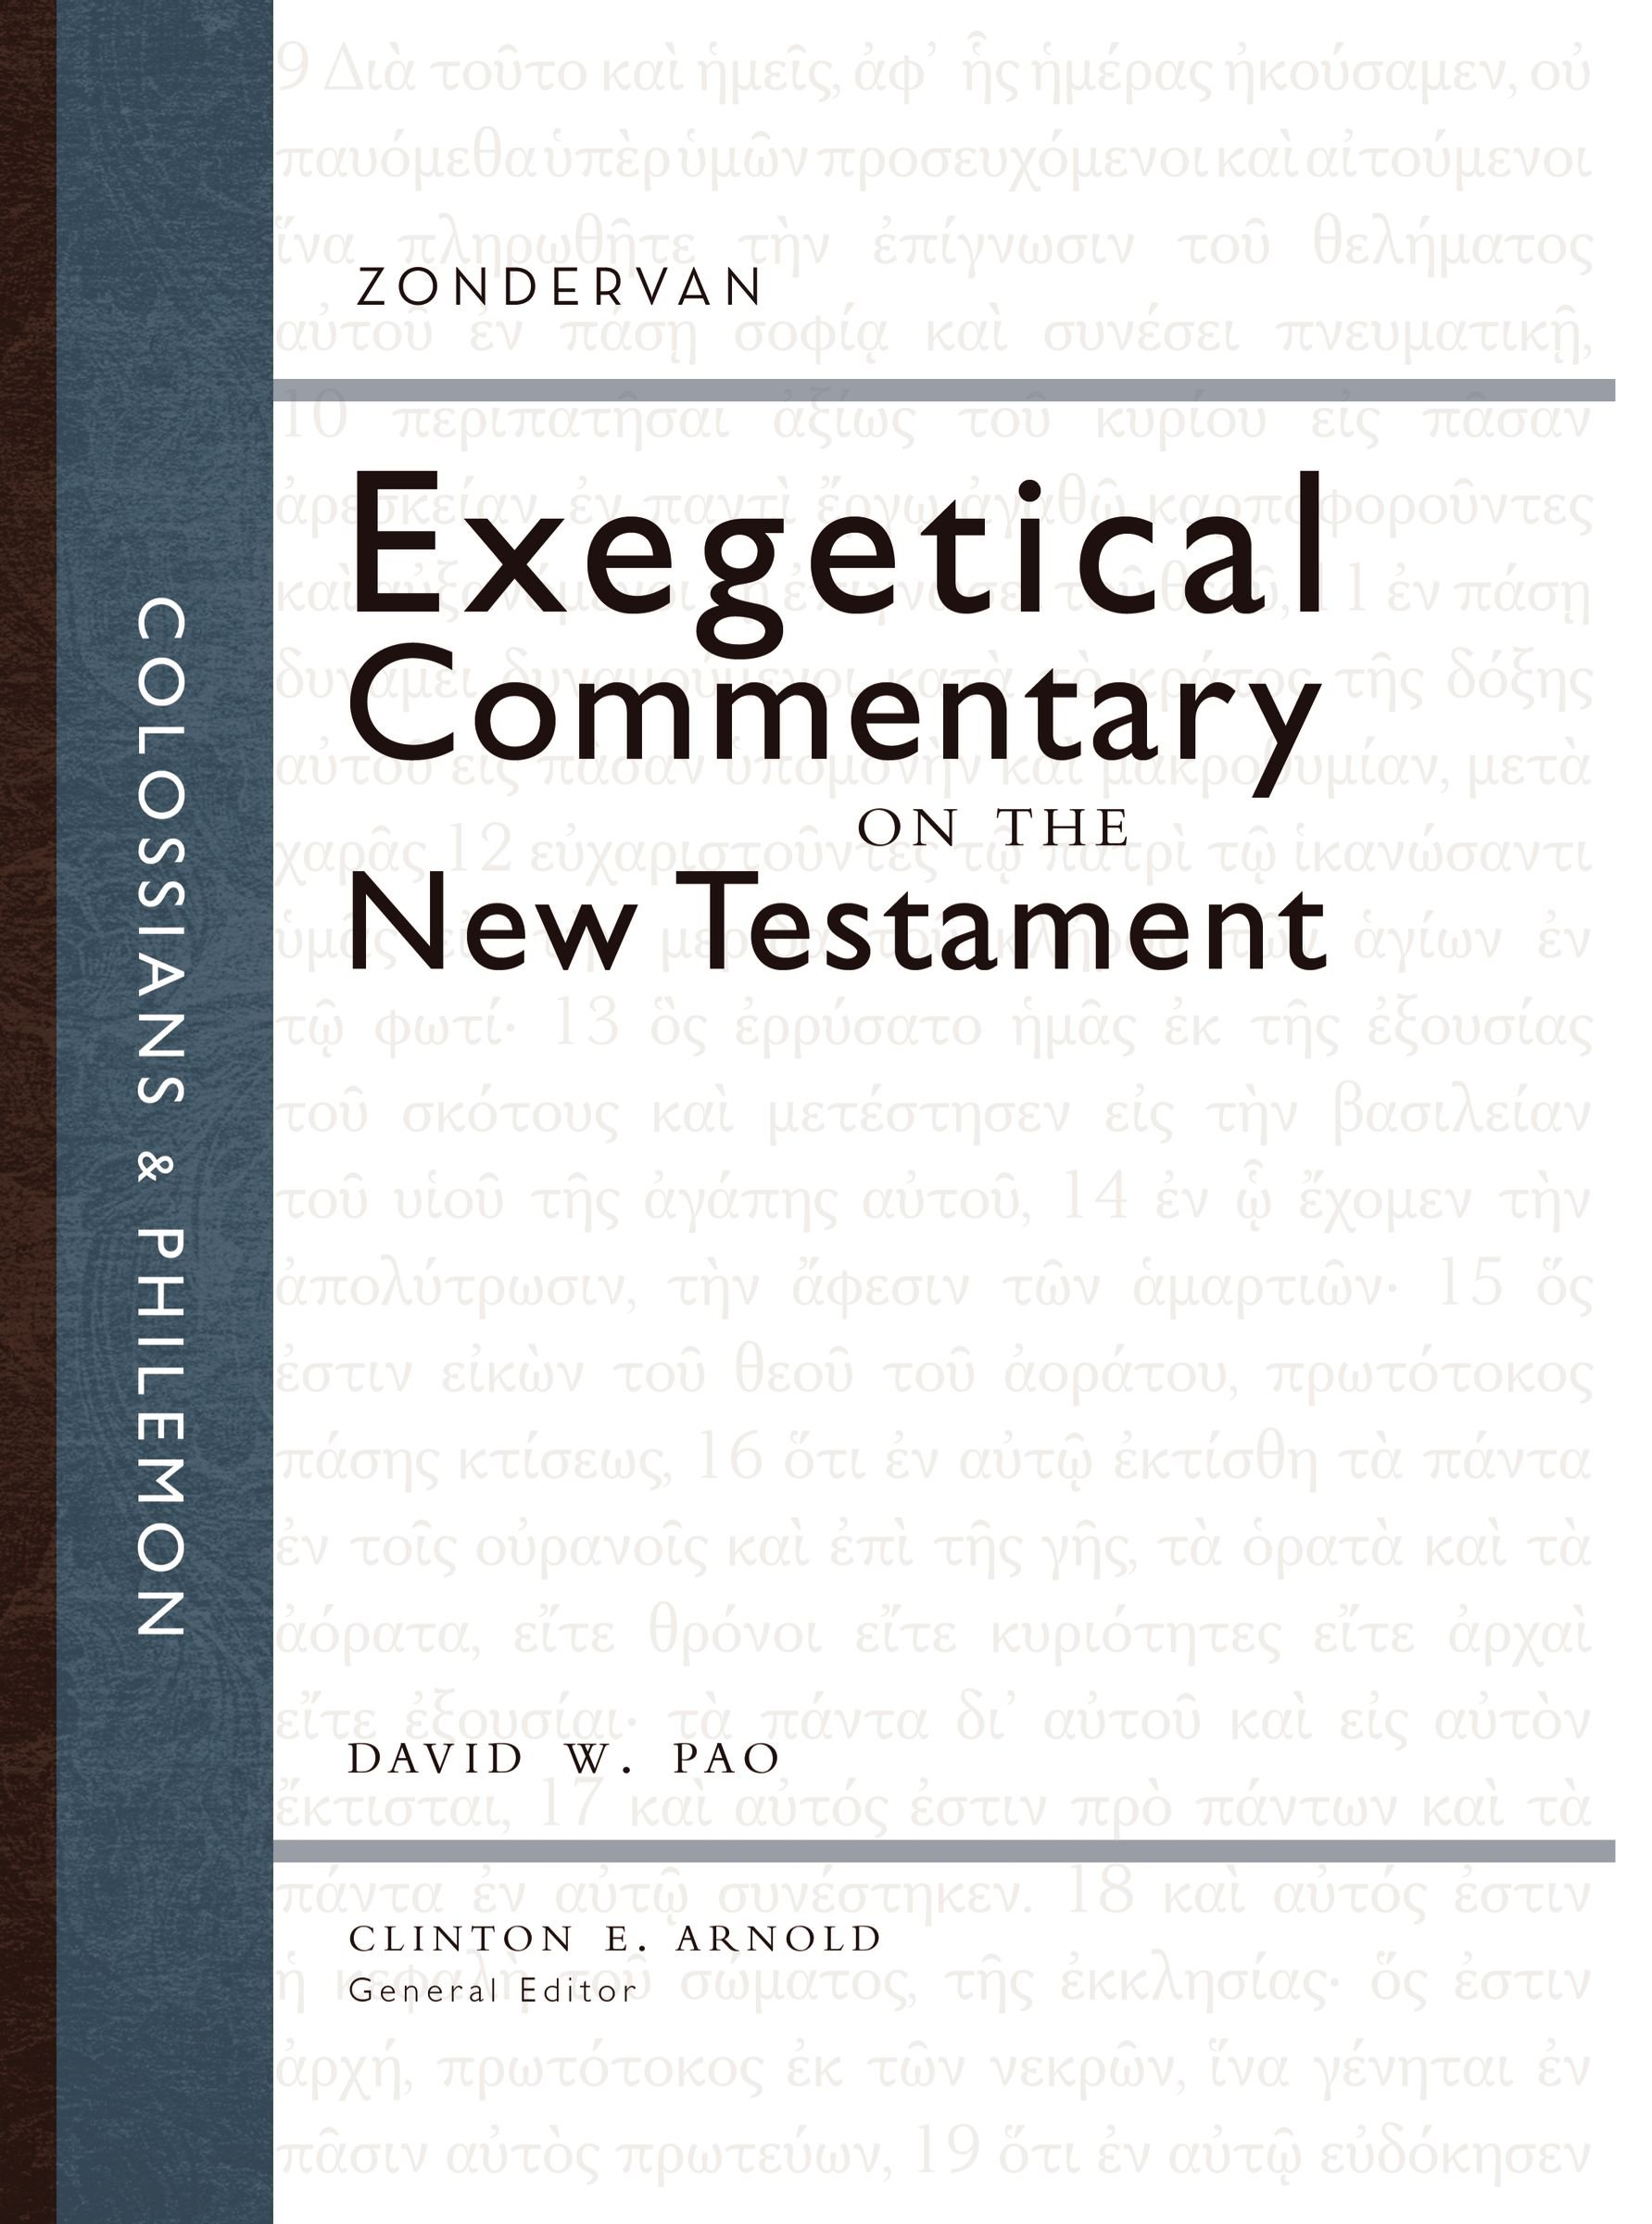 Colossians and Philemon (Zondervan Exegetical Commentary on the New  Testament): David W. Pao, Clinton E. Arnold: 0025986243951: Amazon.com:  Books